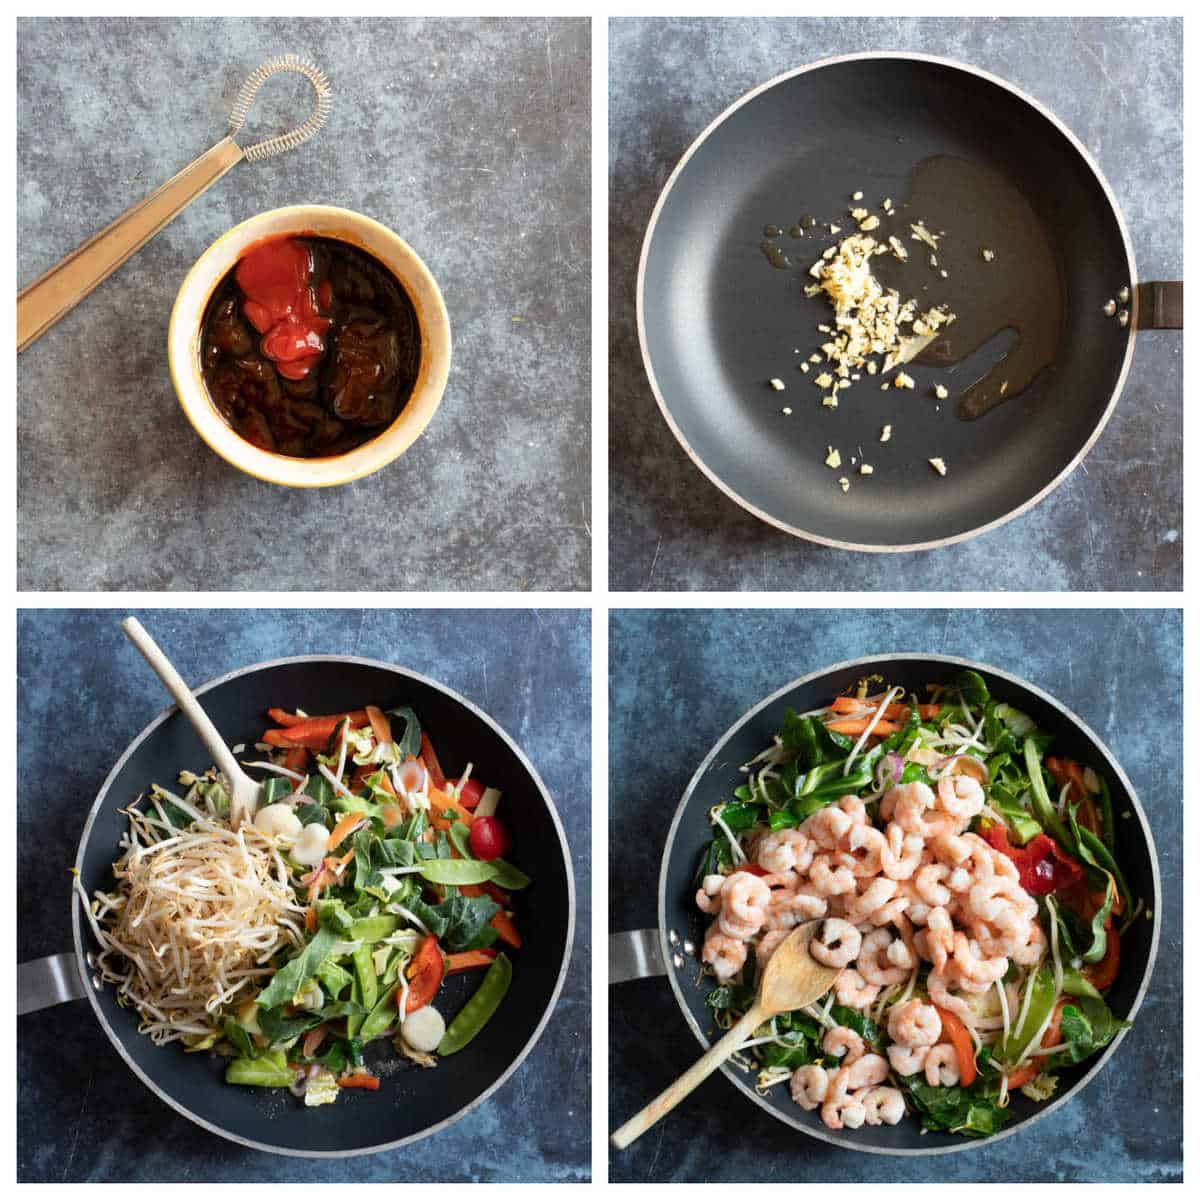 Step by step process photos for making prawn chow mein.